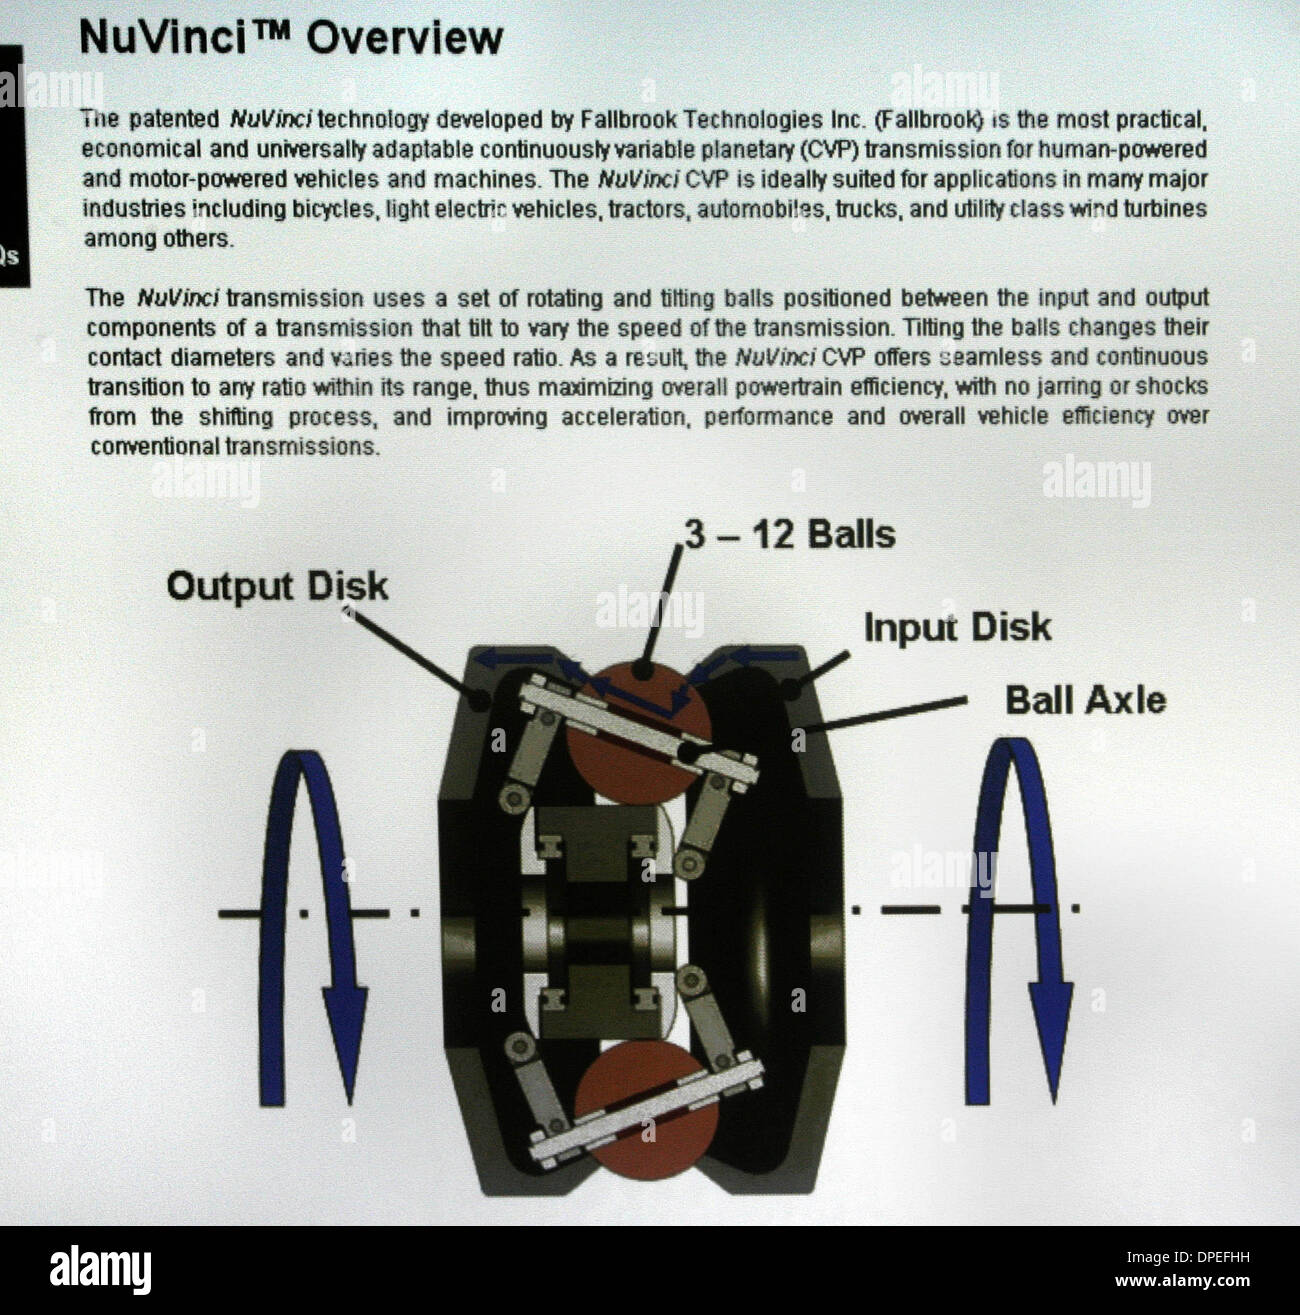 (Published 5/14/2006, H-1) April 28th,2006 .San Diego, California,GARY The schematics for the variable transmission from Fallbrook Technologies in Sorrento Valley. Mandatory Credit: Photo by Don Kohlbauer/San DIego Union Tribune/Zuma Press. copyright 2006 San Diego Union Tribune. - Stock Image